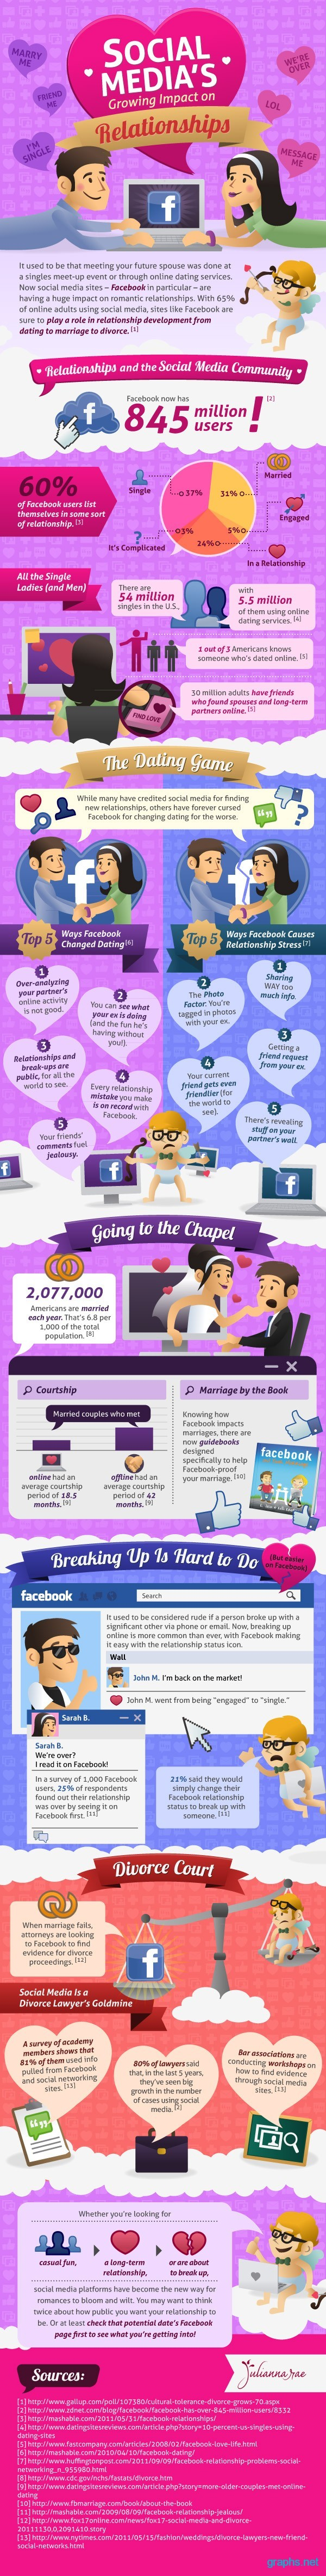 facebook impact on relationships